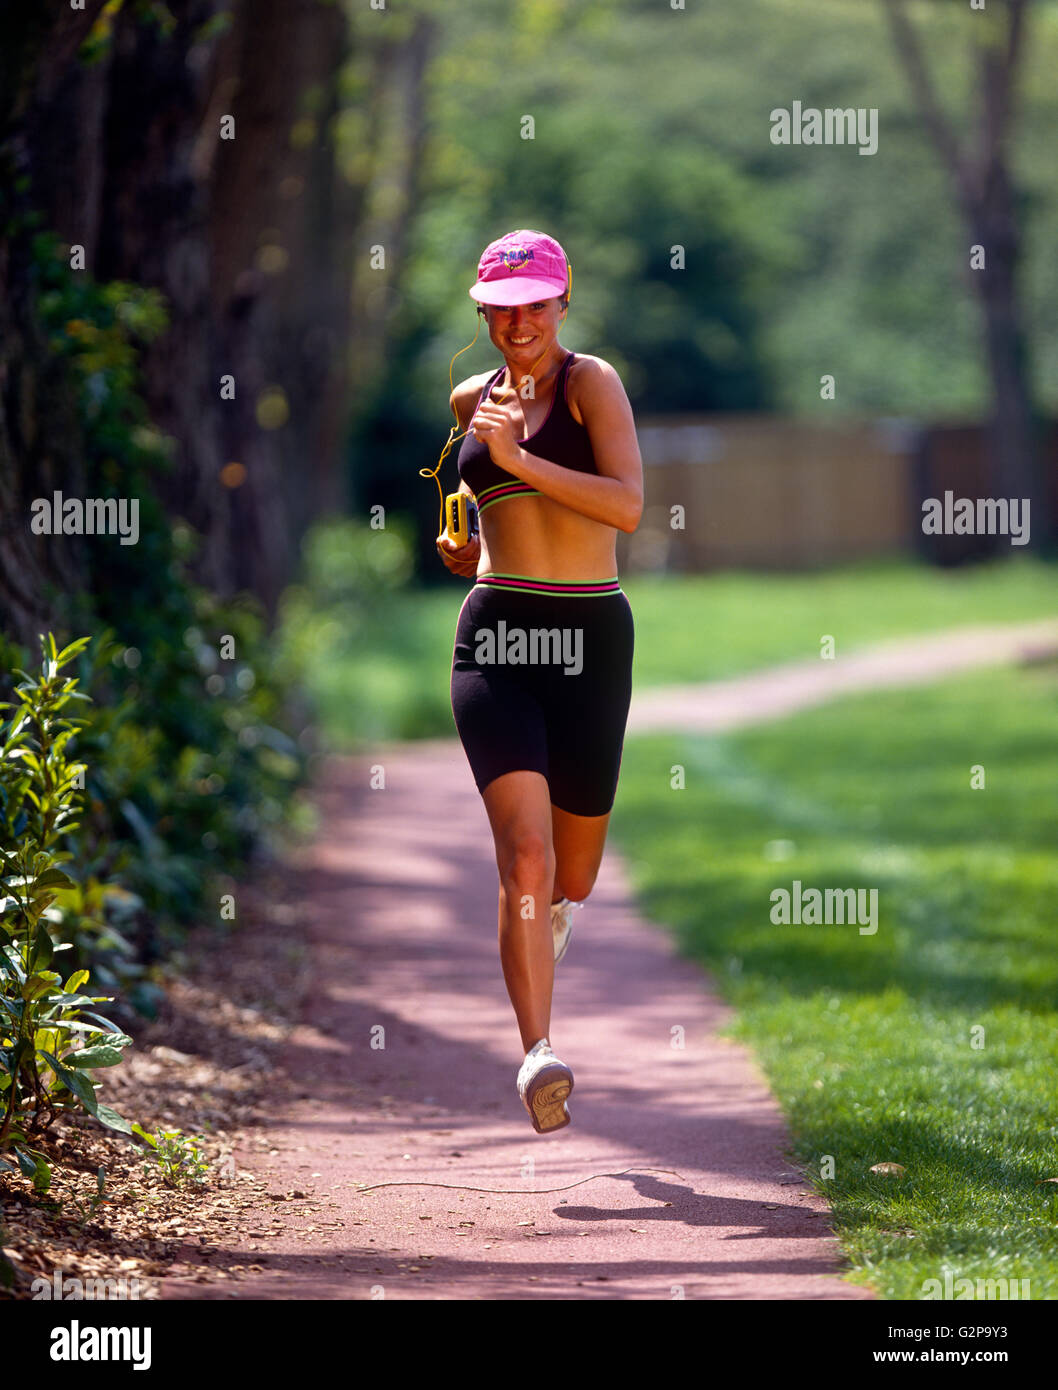 A girl running, outdoors. - Stock Image